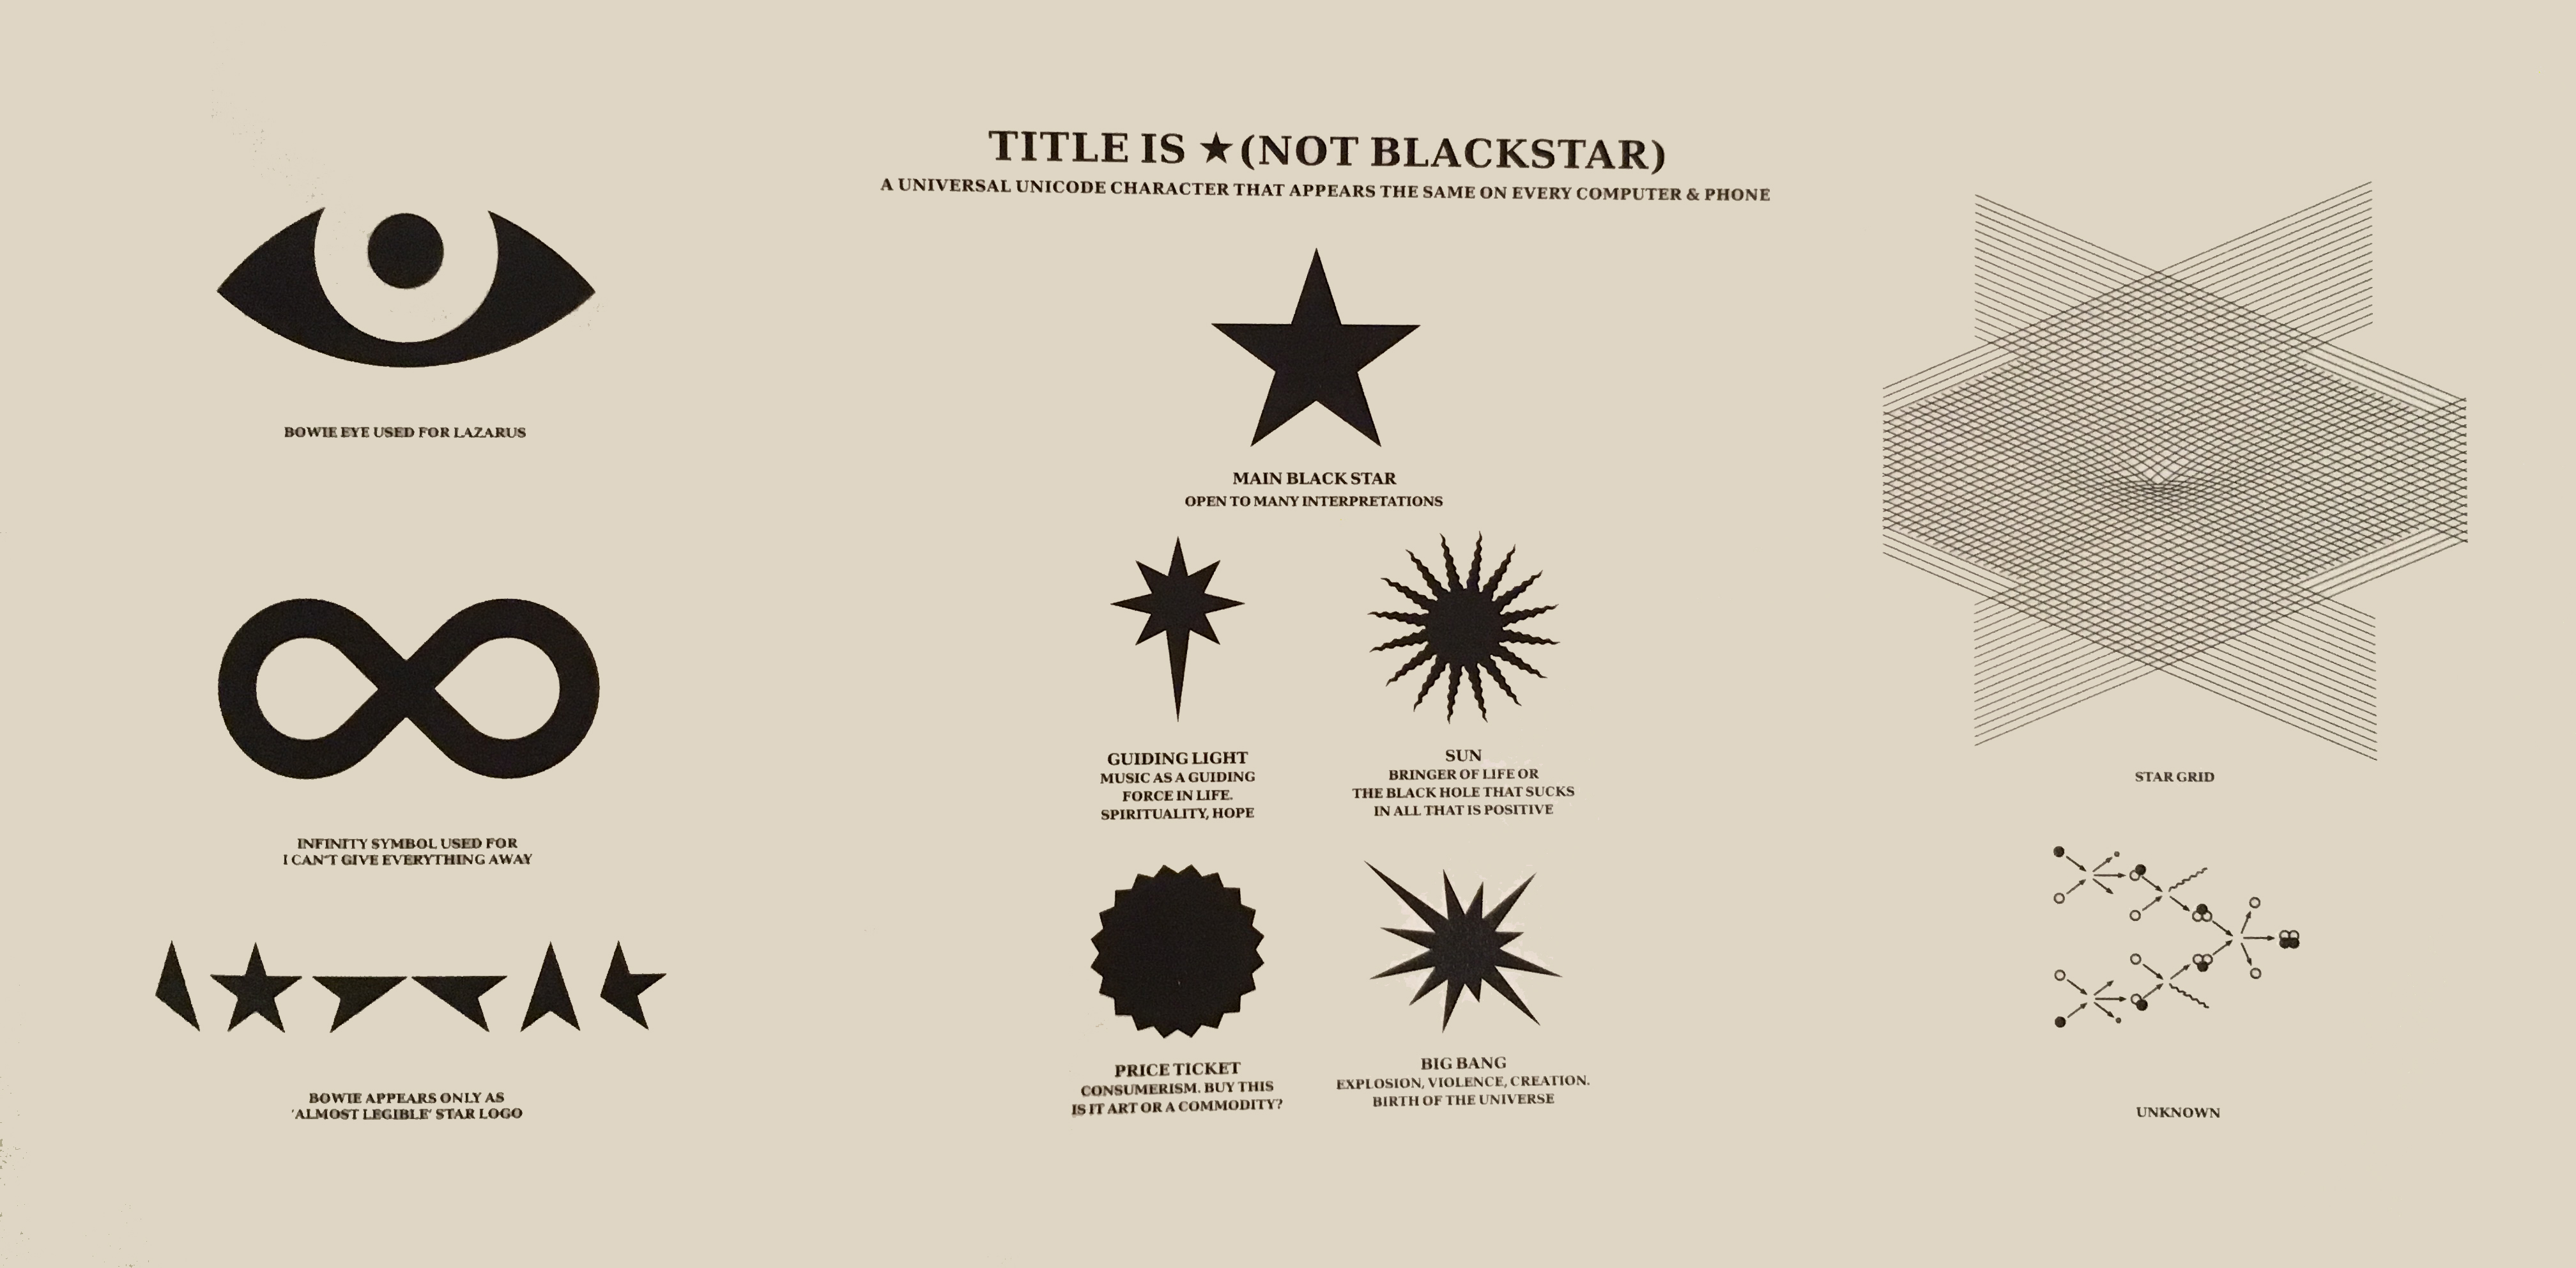 Blackstar created by Jonathan Barnbrook